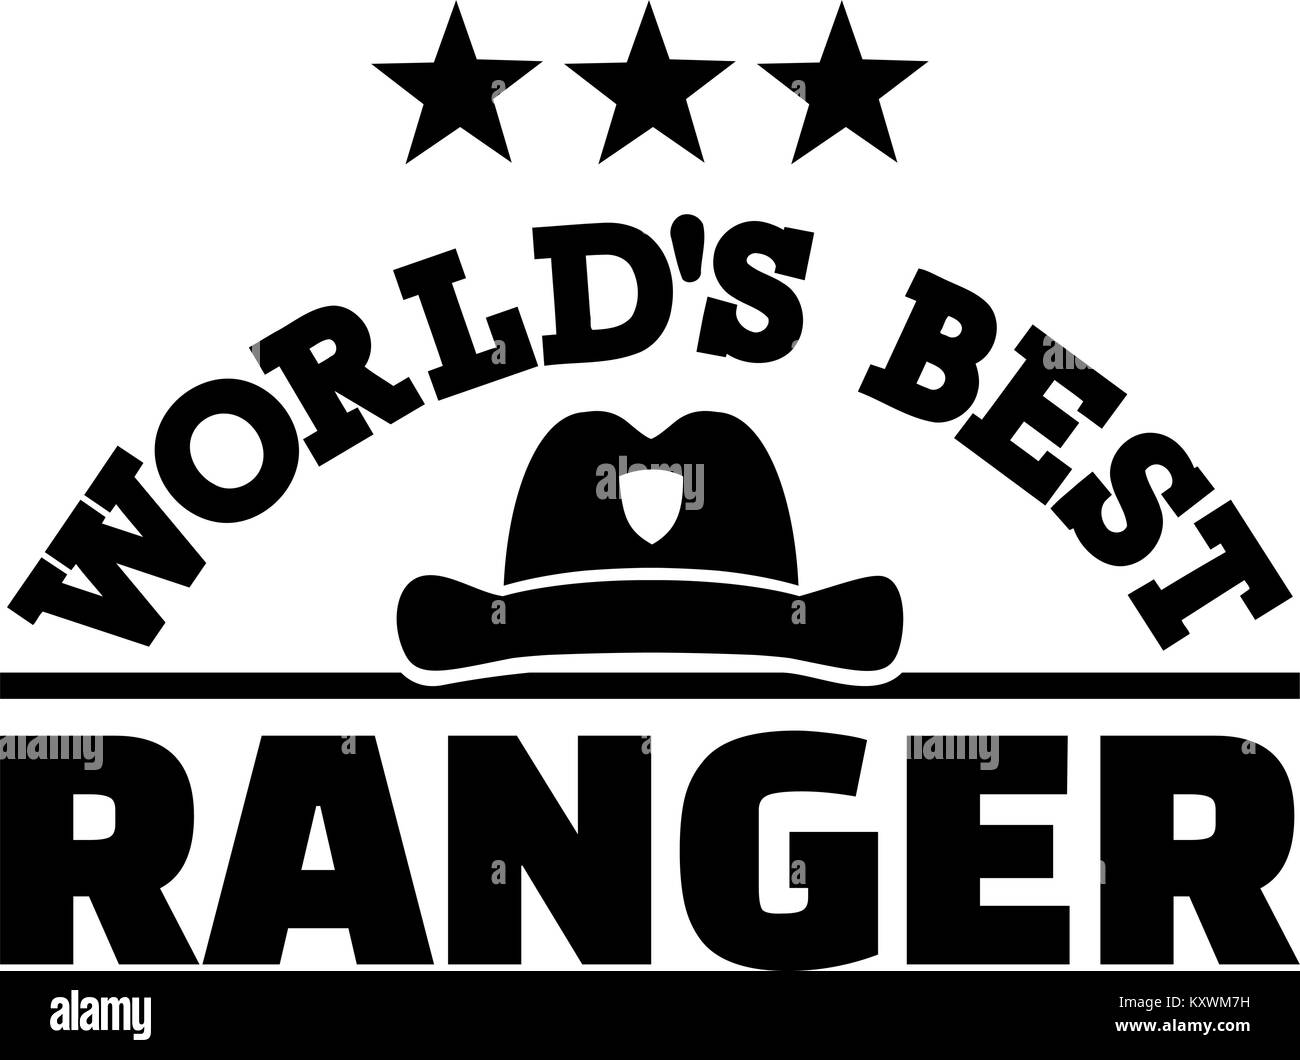 World's best Ranger with hat - Stock Vector